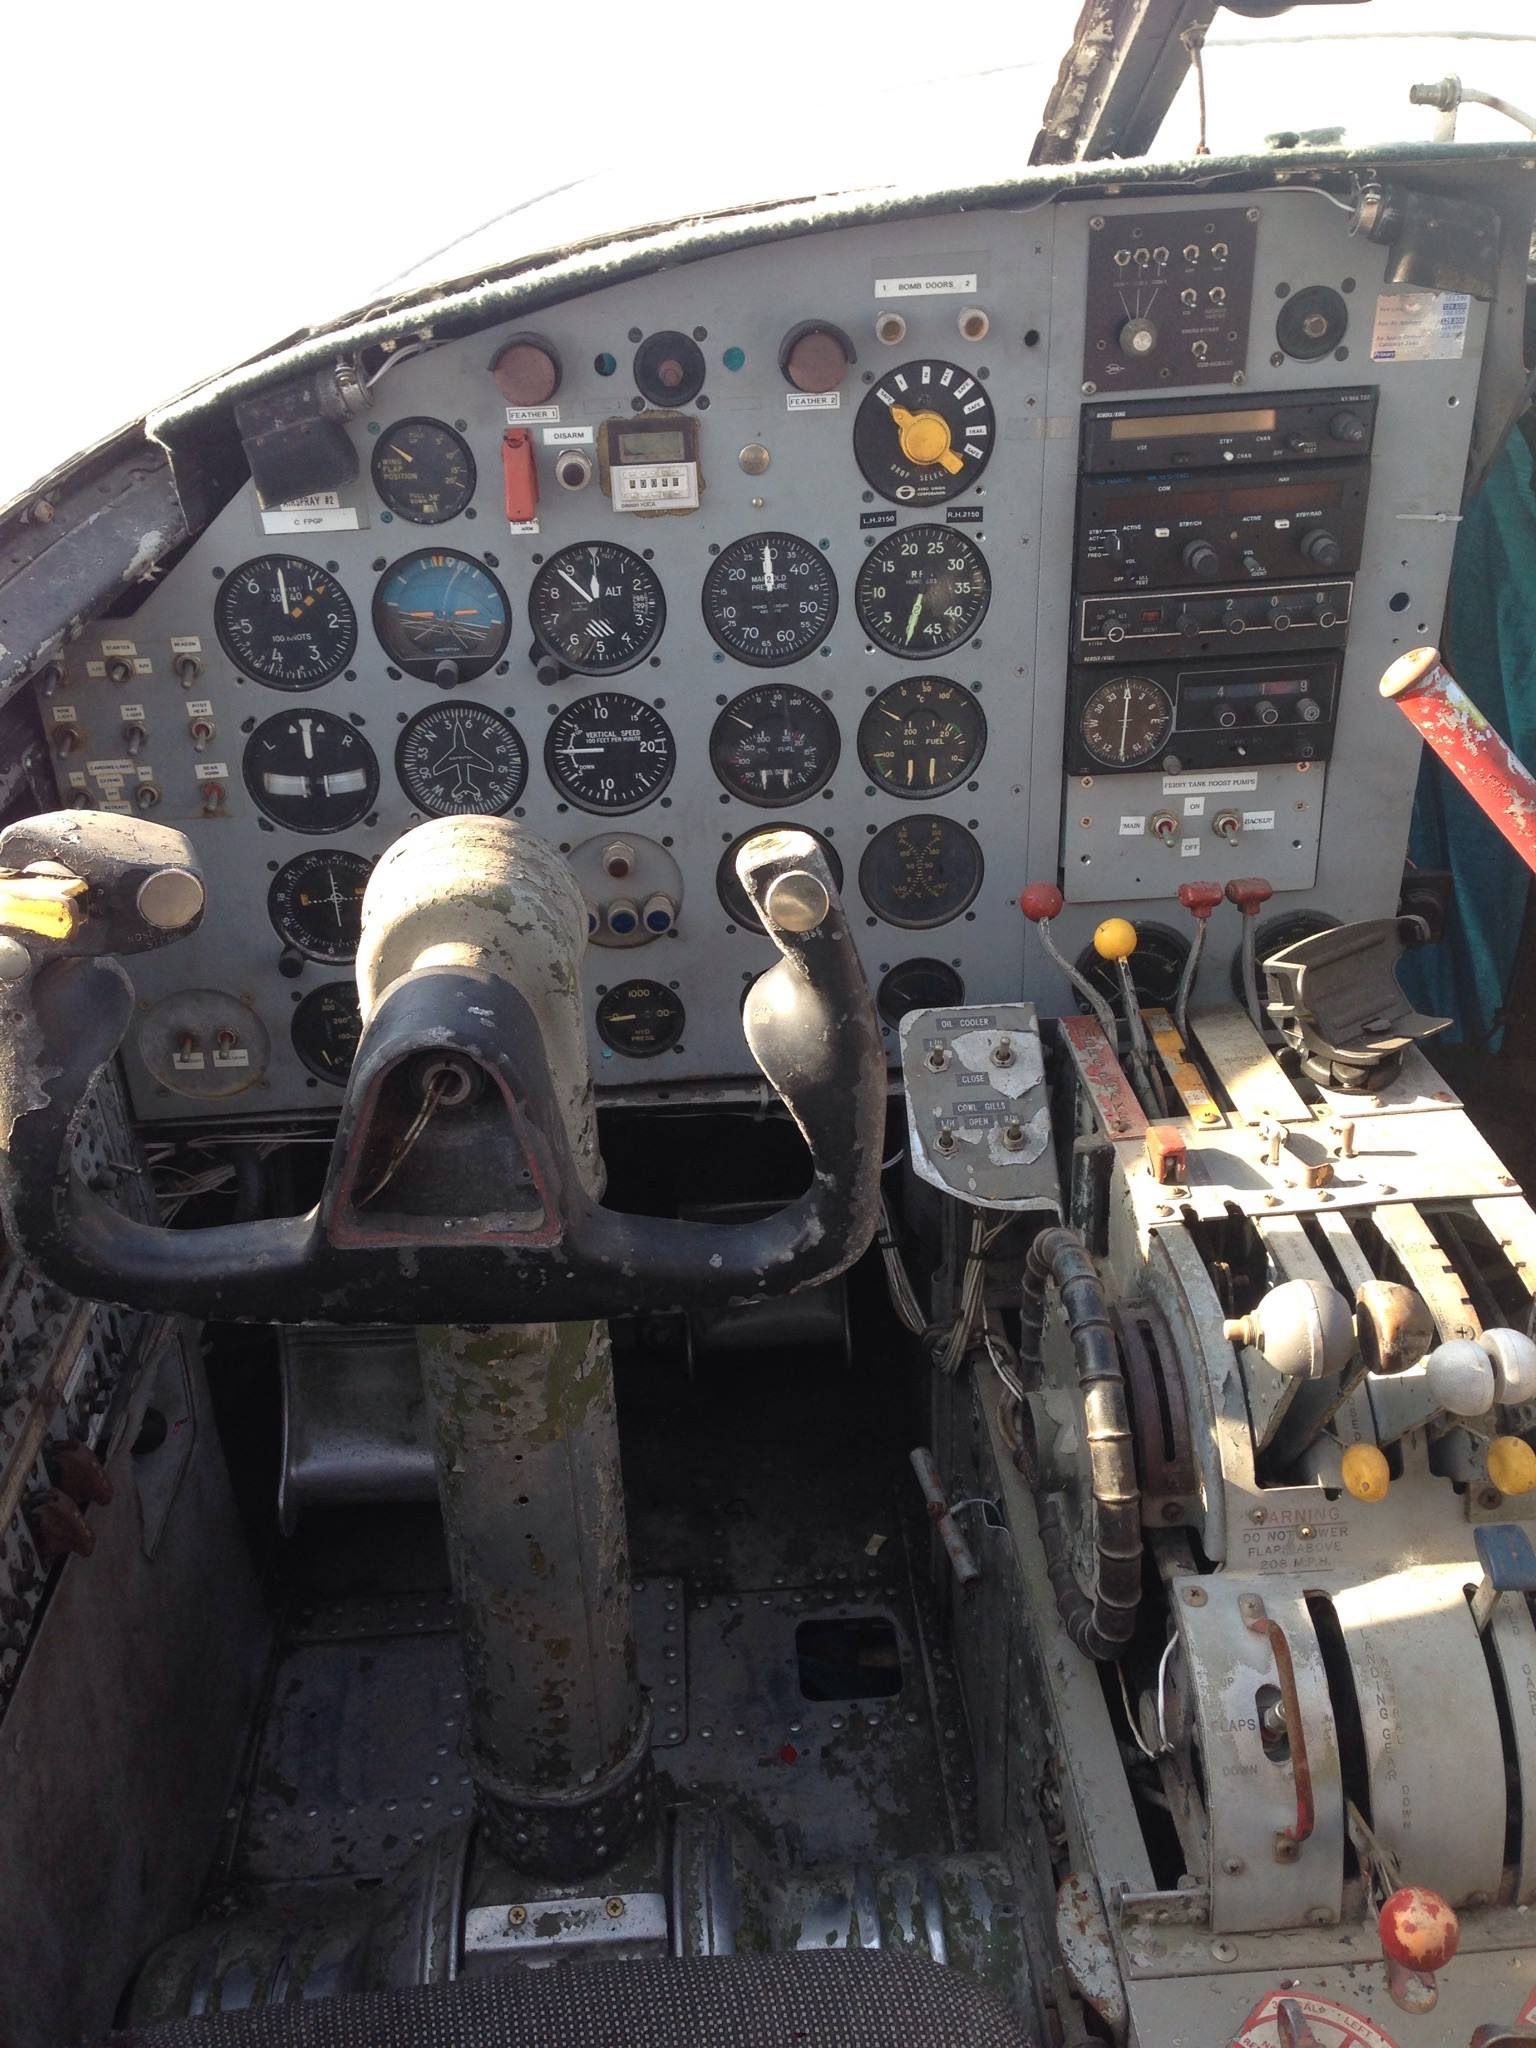 The Invader's main instrument panel. (Photo via Reevers)